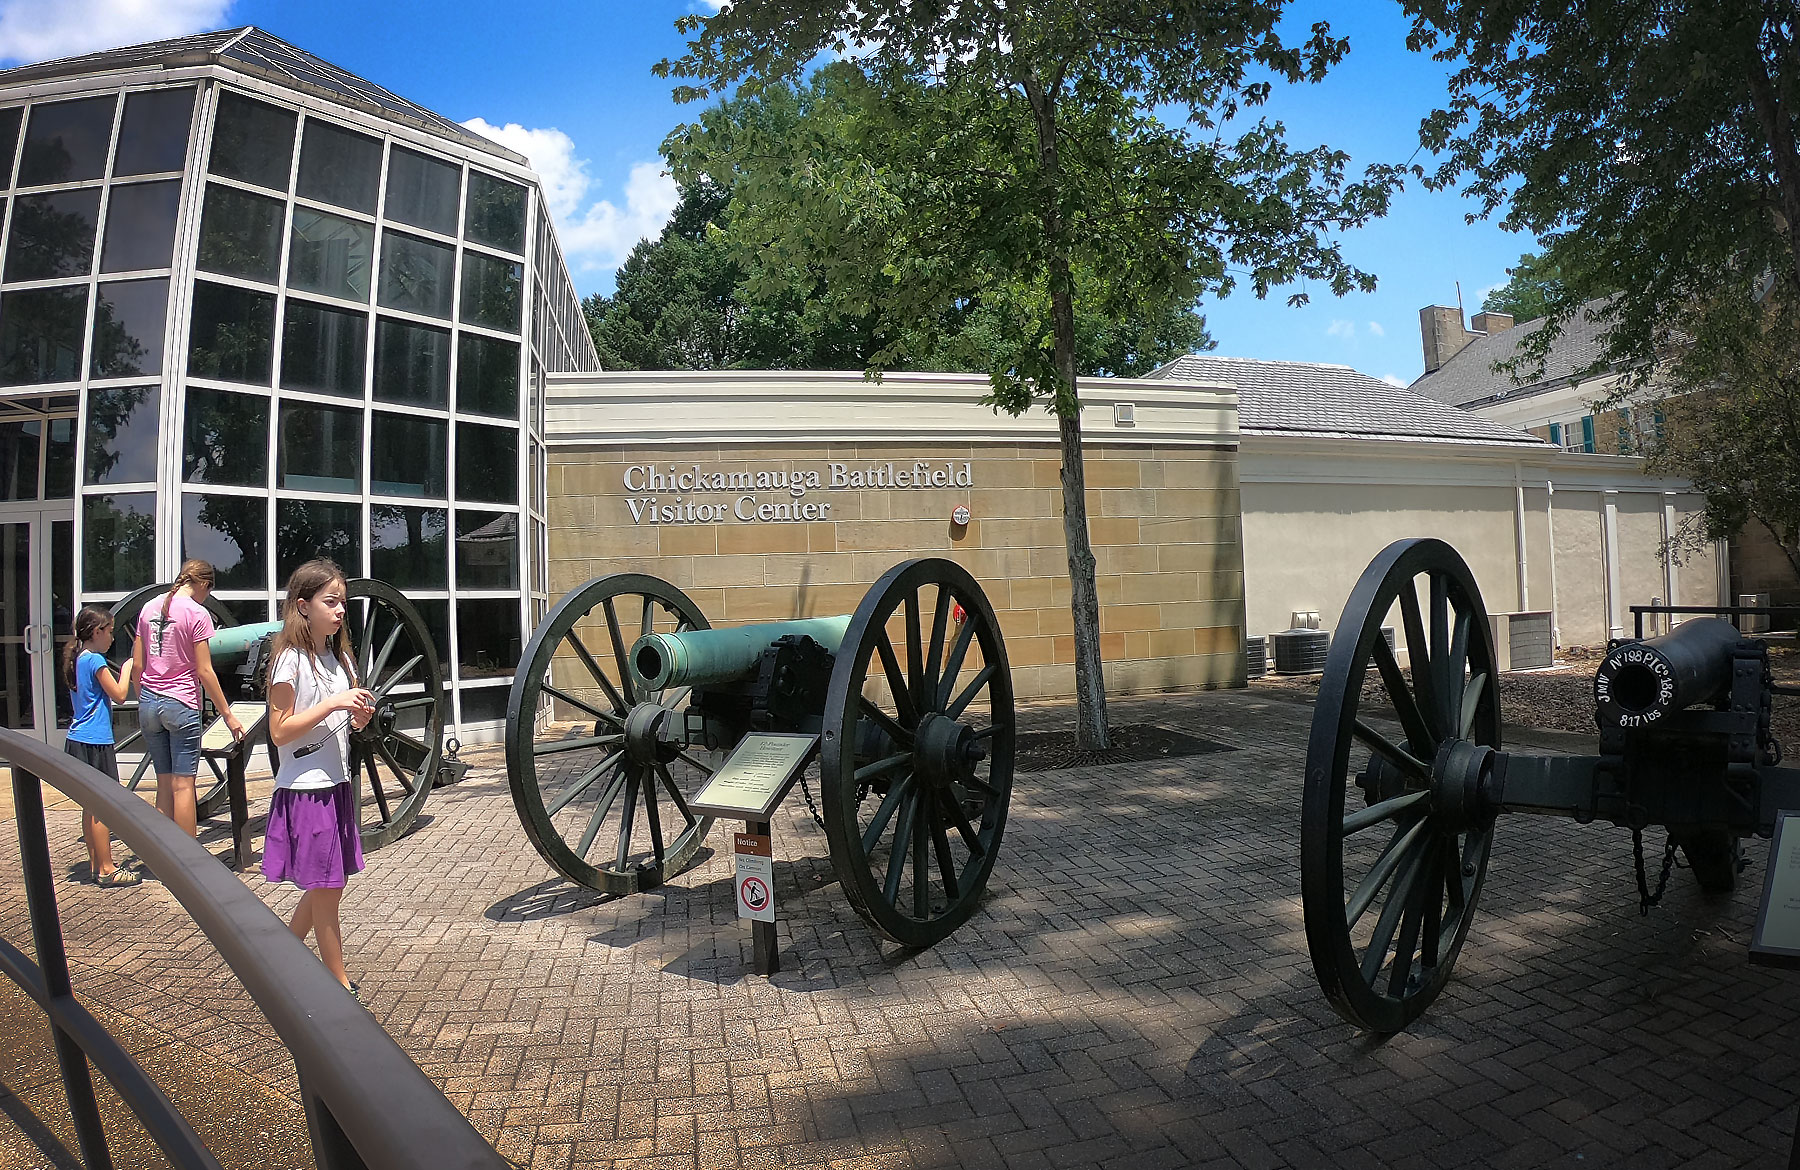 Girls with cannon at the Chickamauga Battlefield Visitor Center